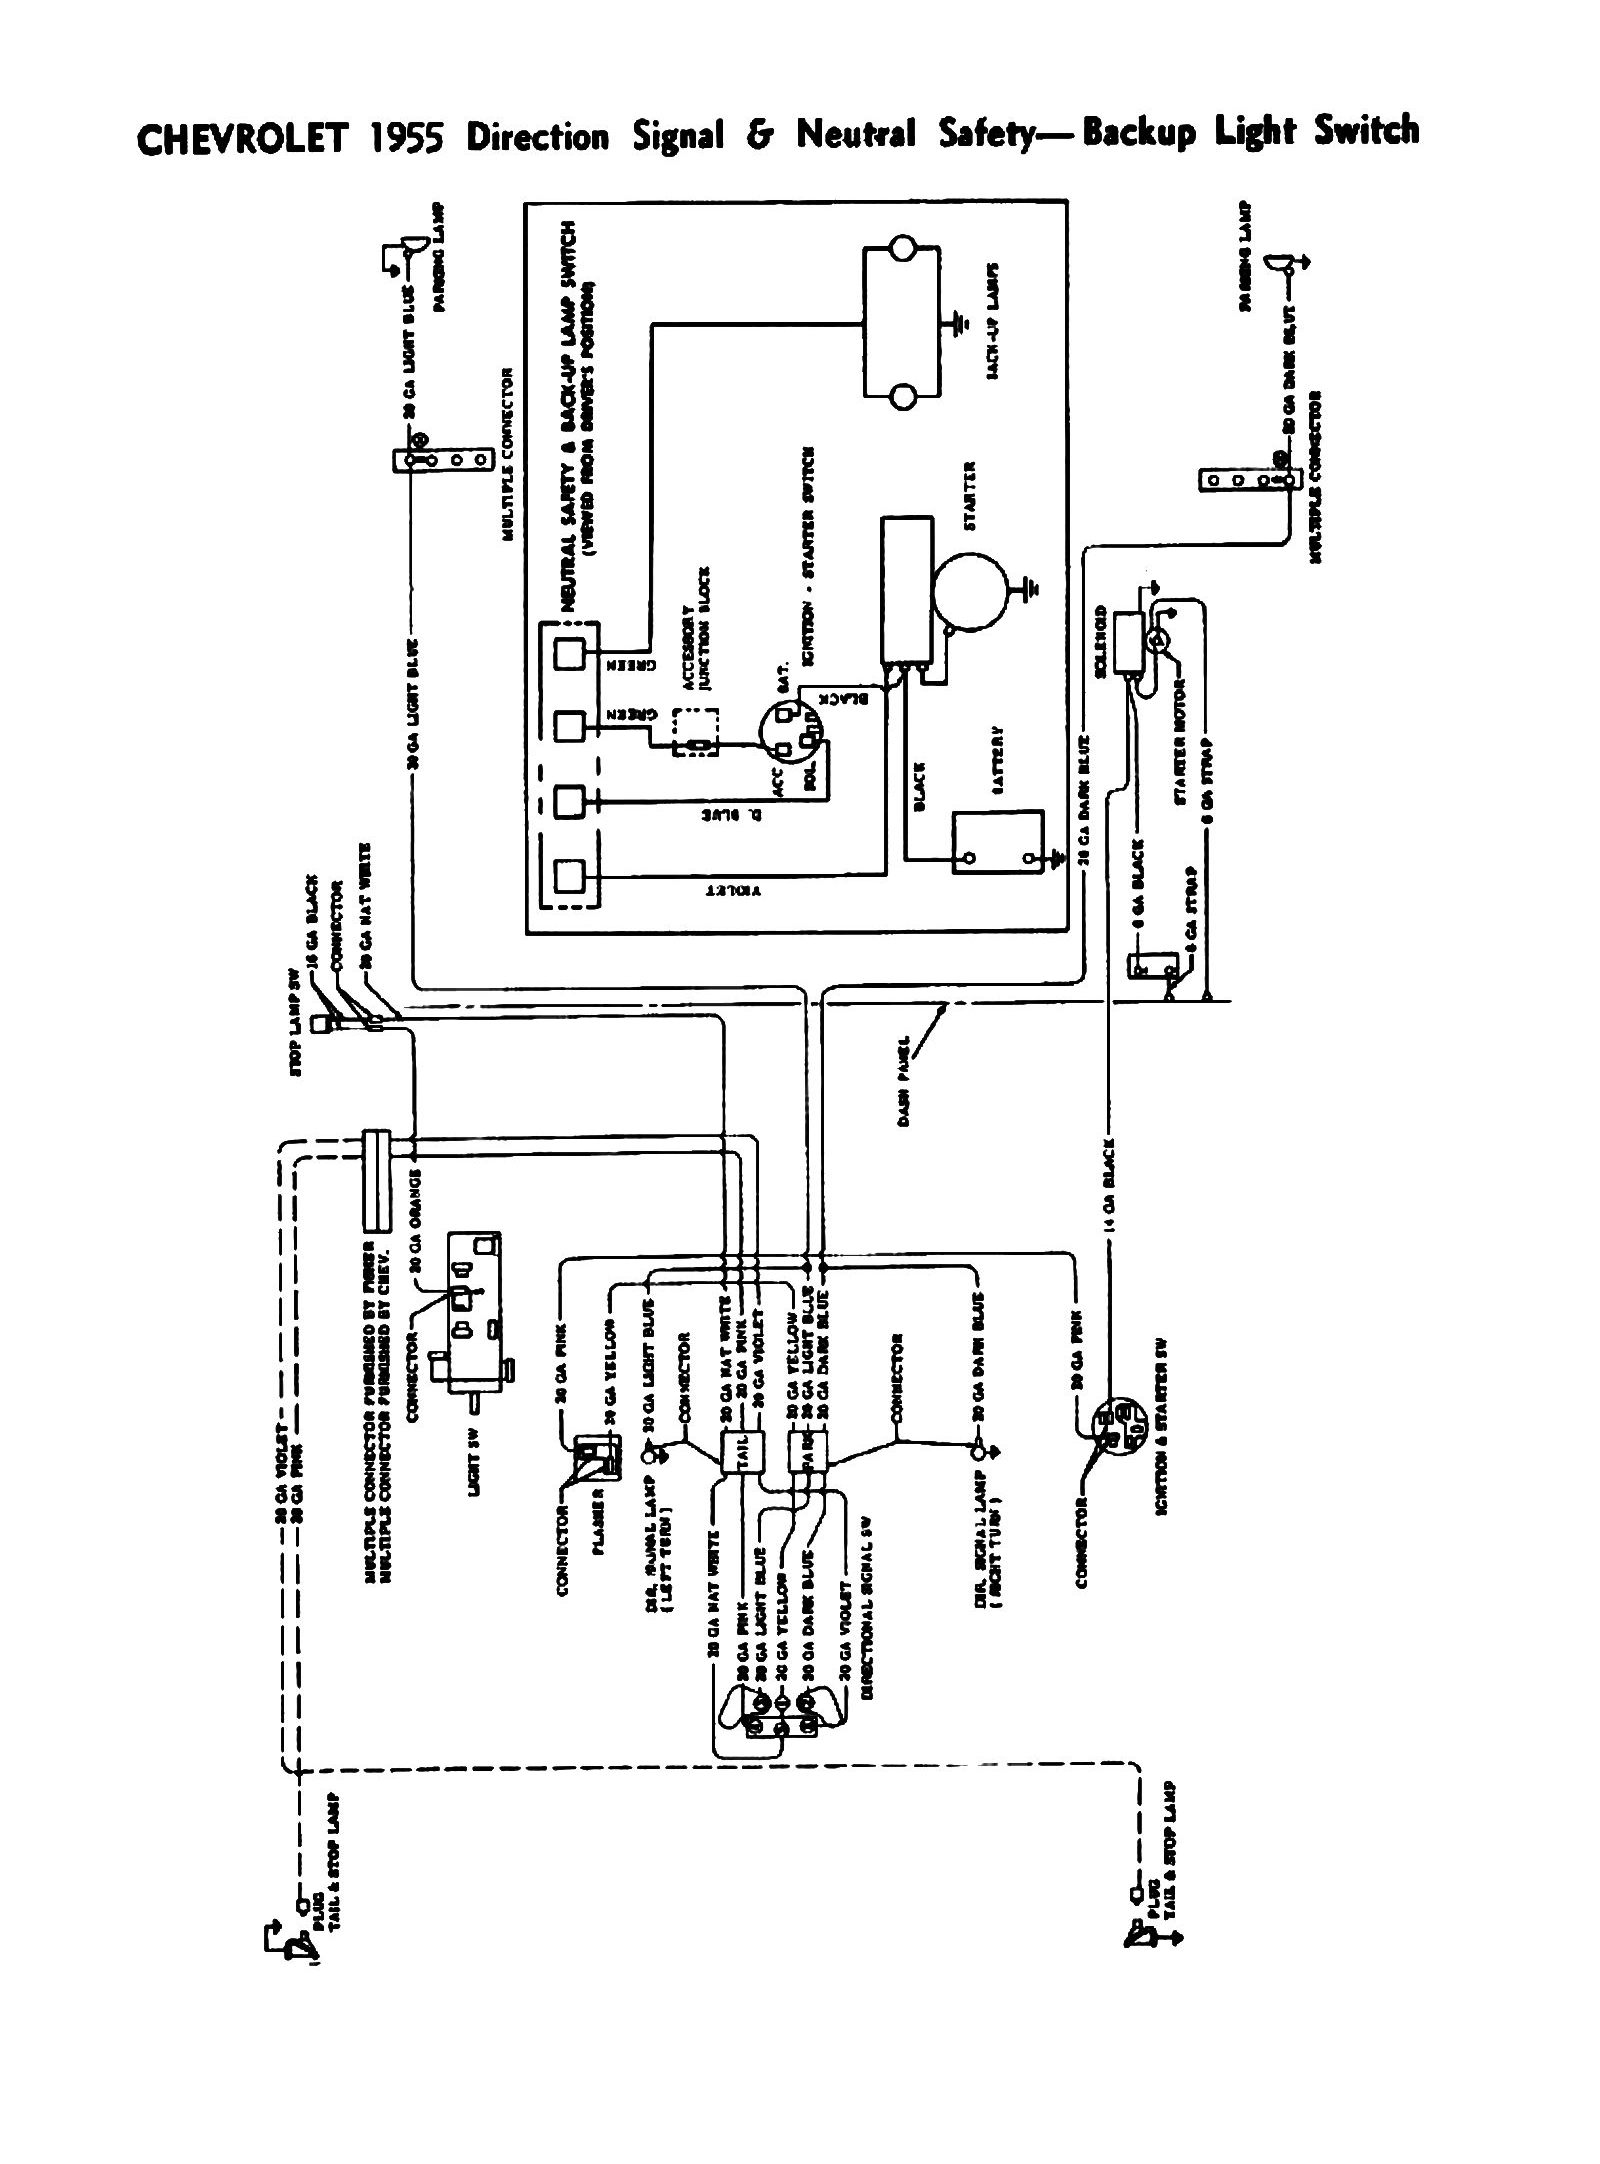 55signal chevy wiring diagrams 1984 chevy truck ignition wiring diagram at soozxer.org